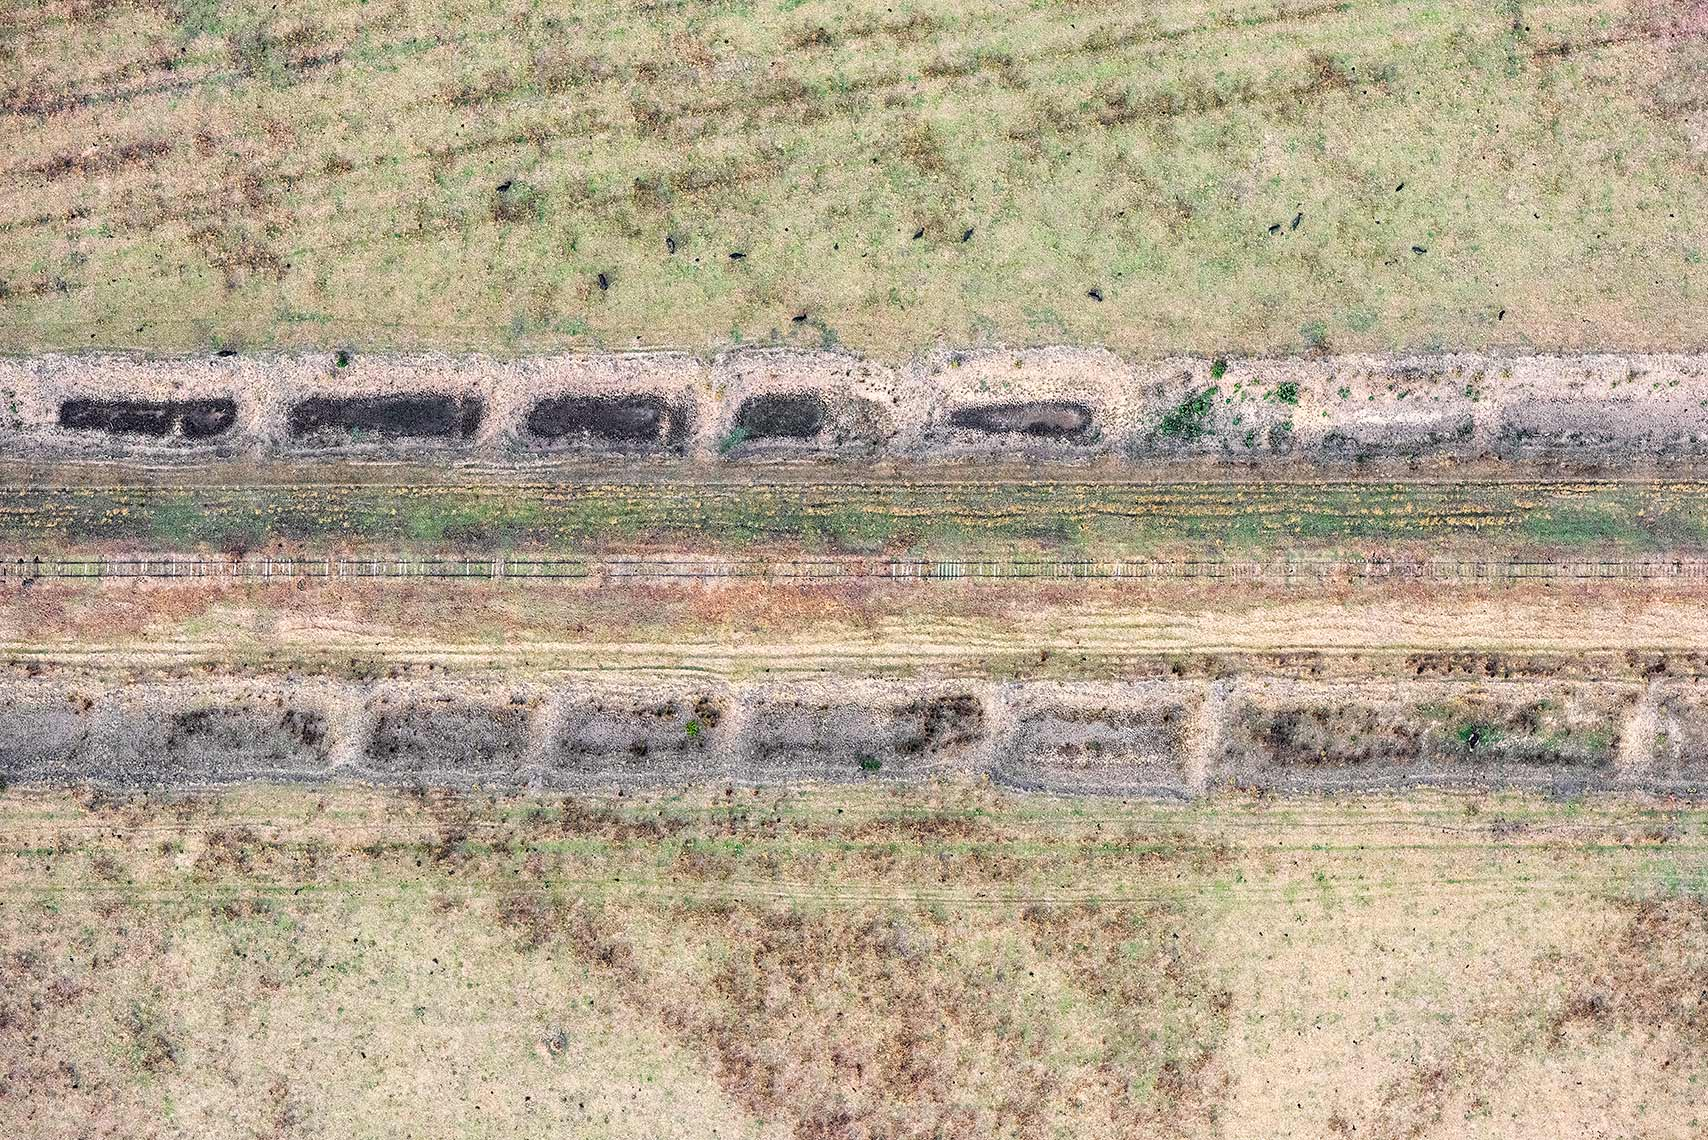 Zoe Wetherall / Aerial Landscape / Railway Track